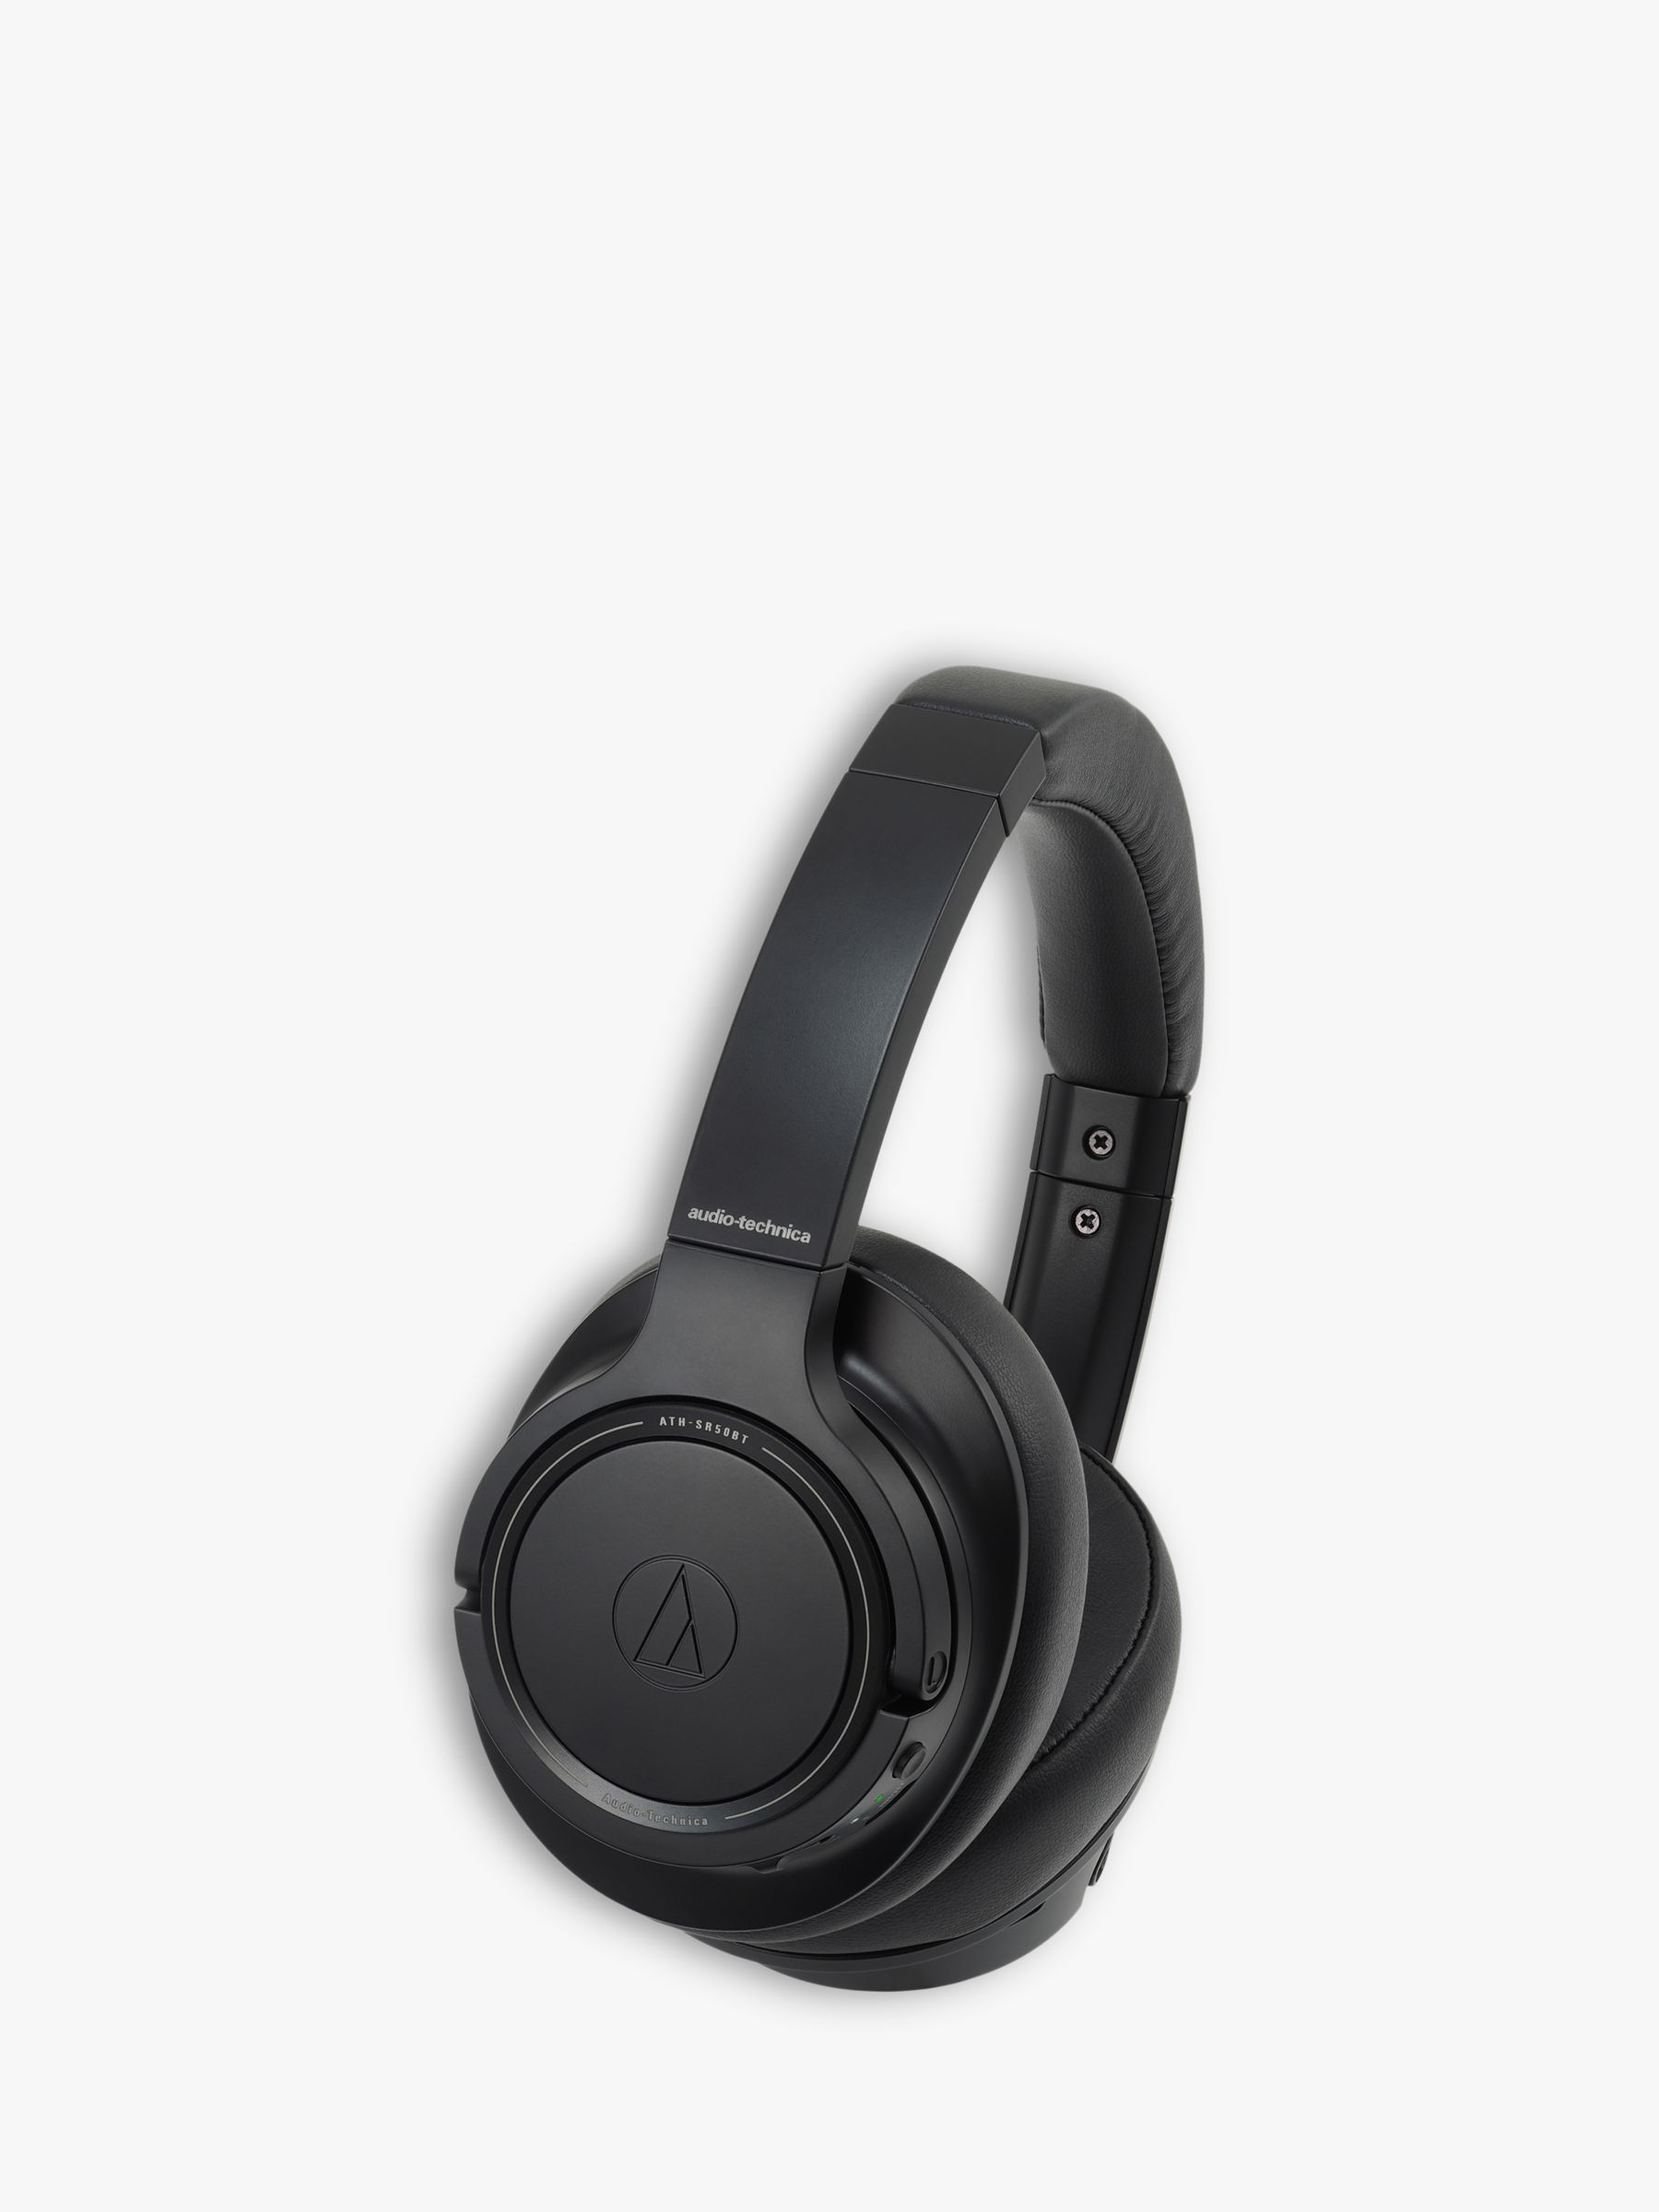 Audio-Technica Audio-Technica ATH-SR50BT Wireless Bluetooth Over-Ear Headphones with Mic/Remote